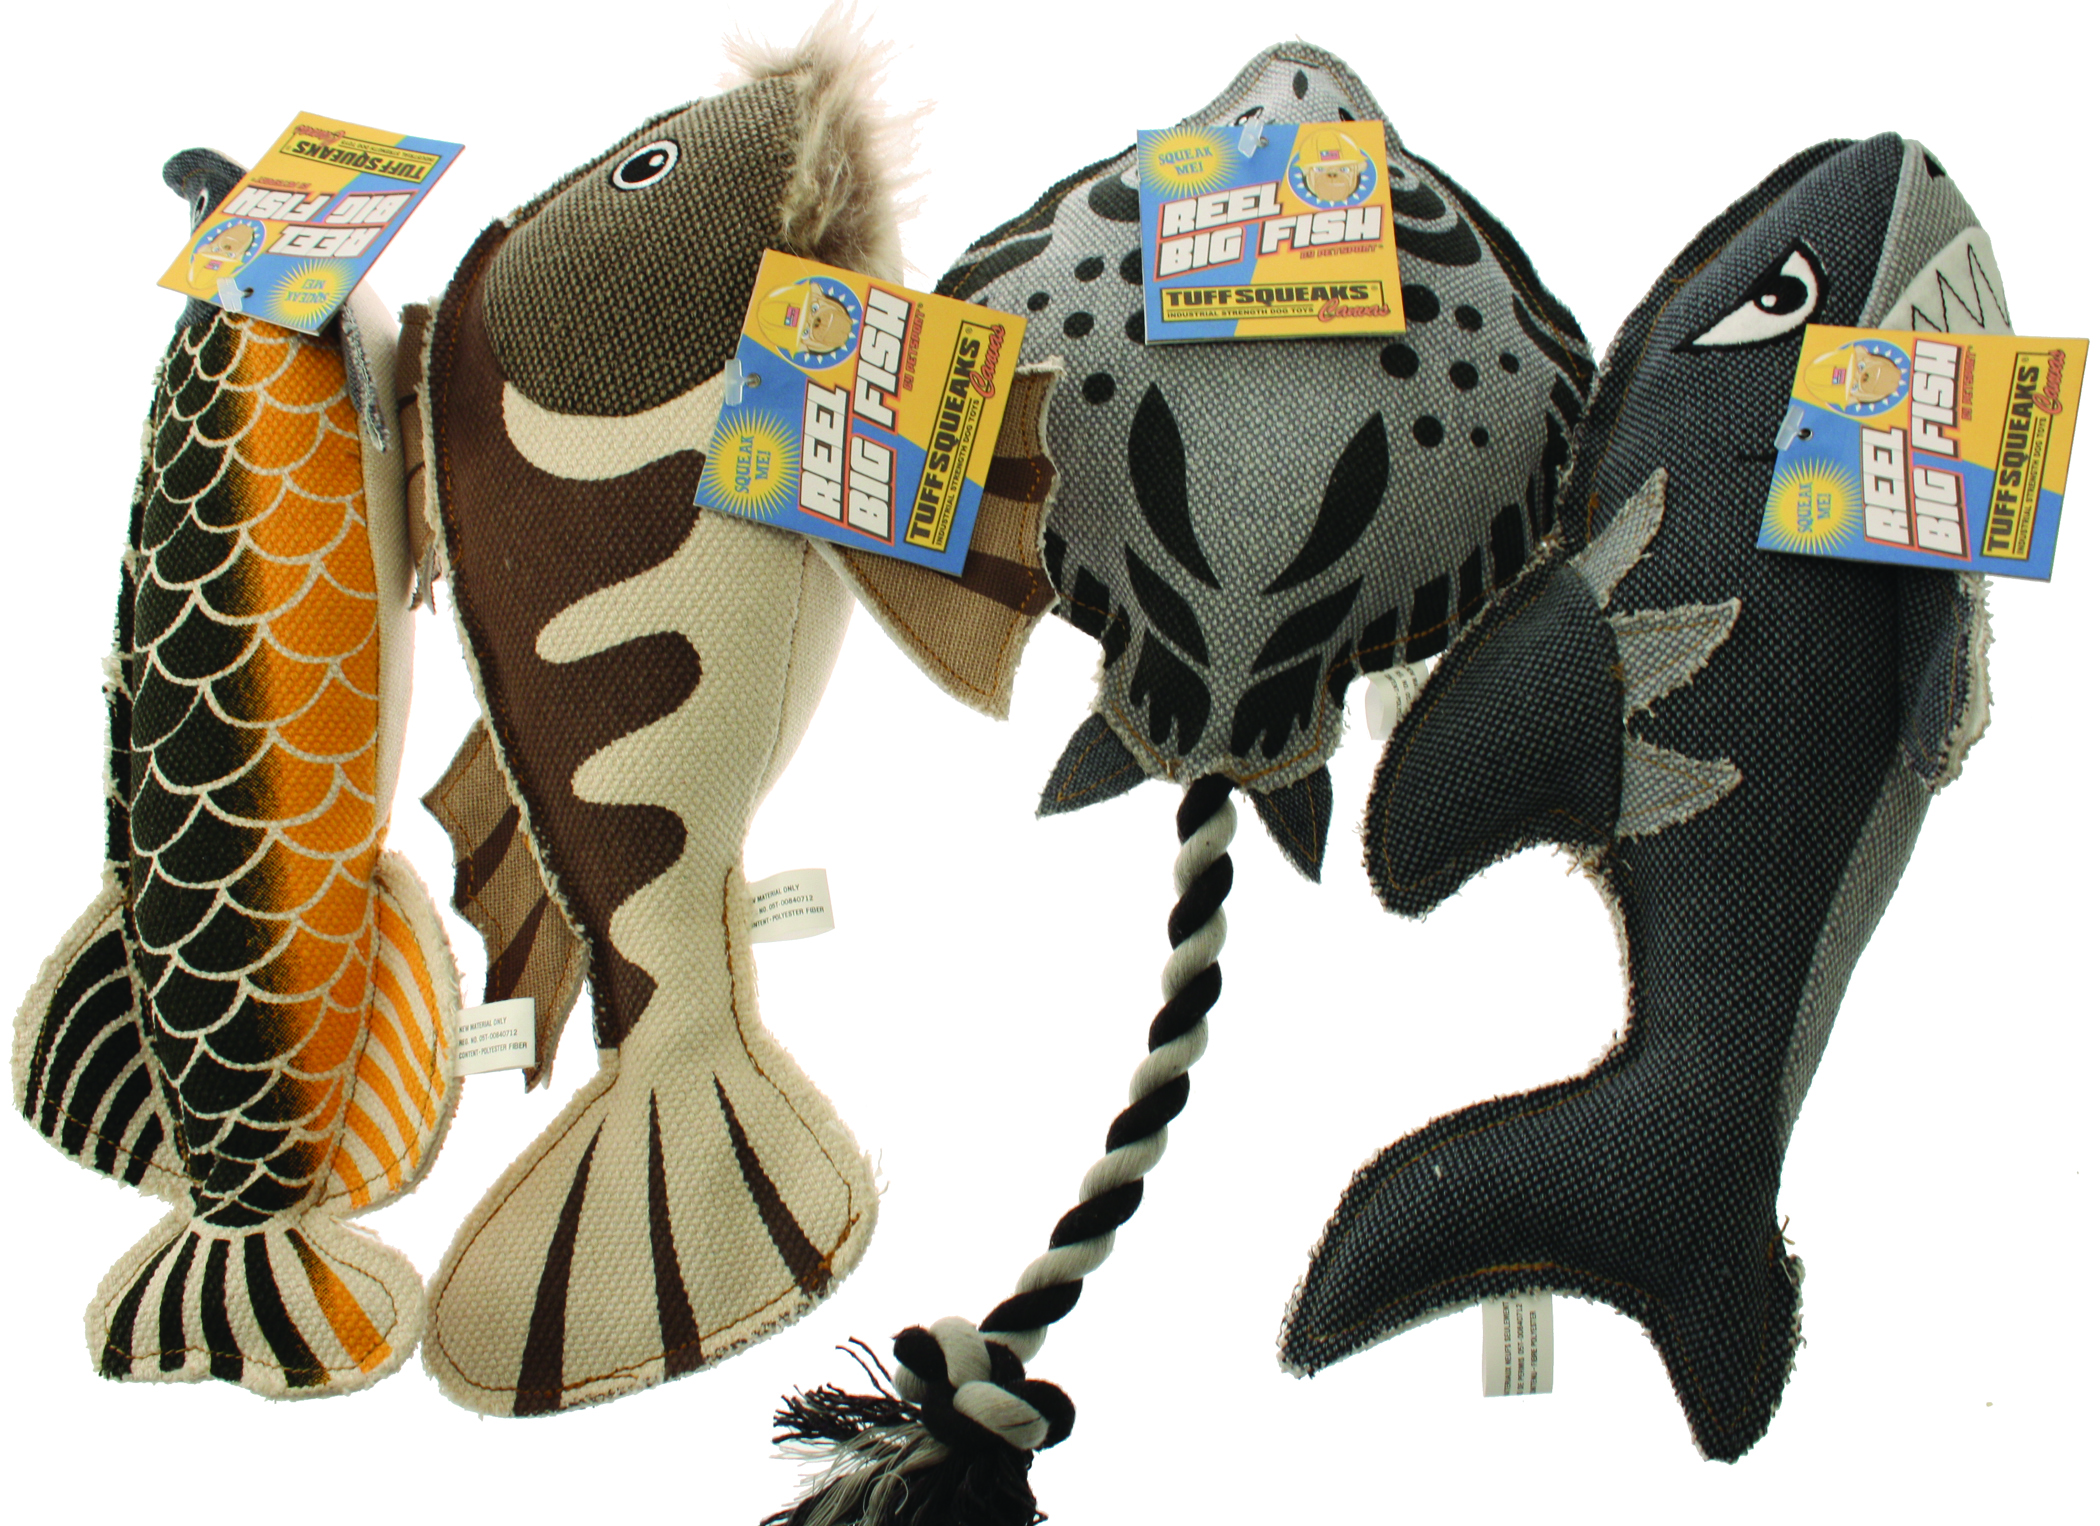 PETSPORT USA Tuff Squeaks Reel Big Fish Dog Toy